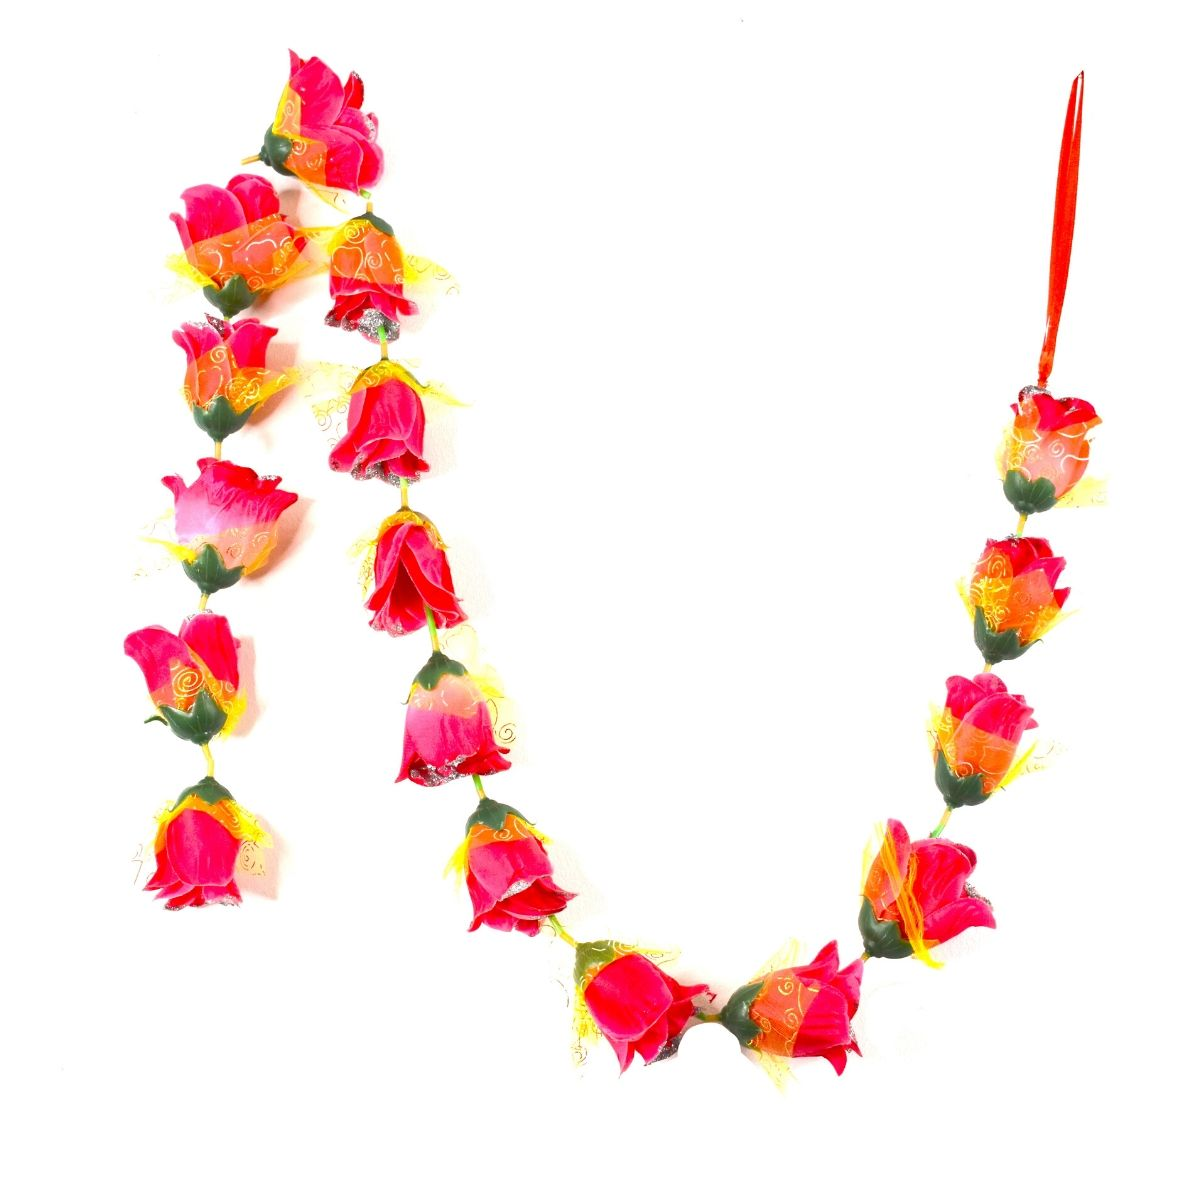 1 x Red Pink Rose Garland with Silver Glitter Ends & Yellow Netting (140cm Long)